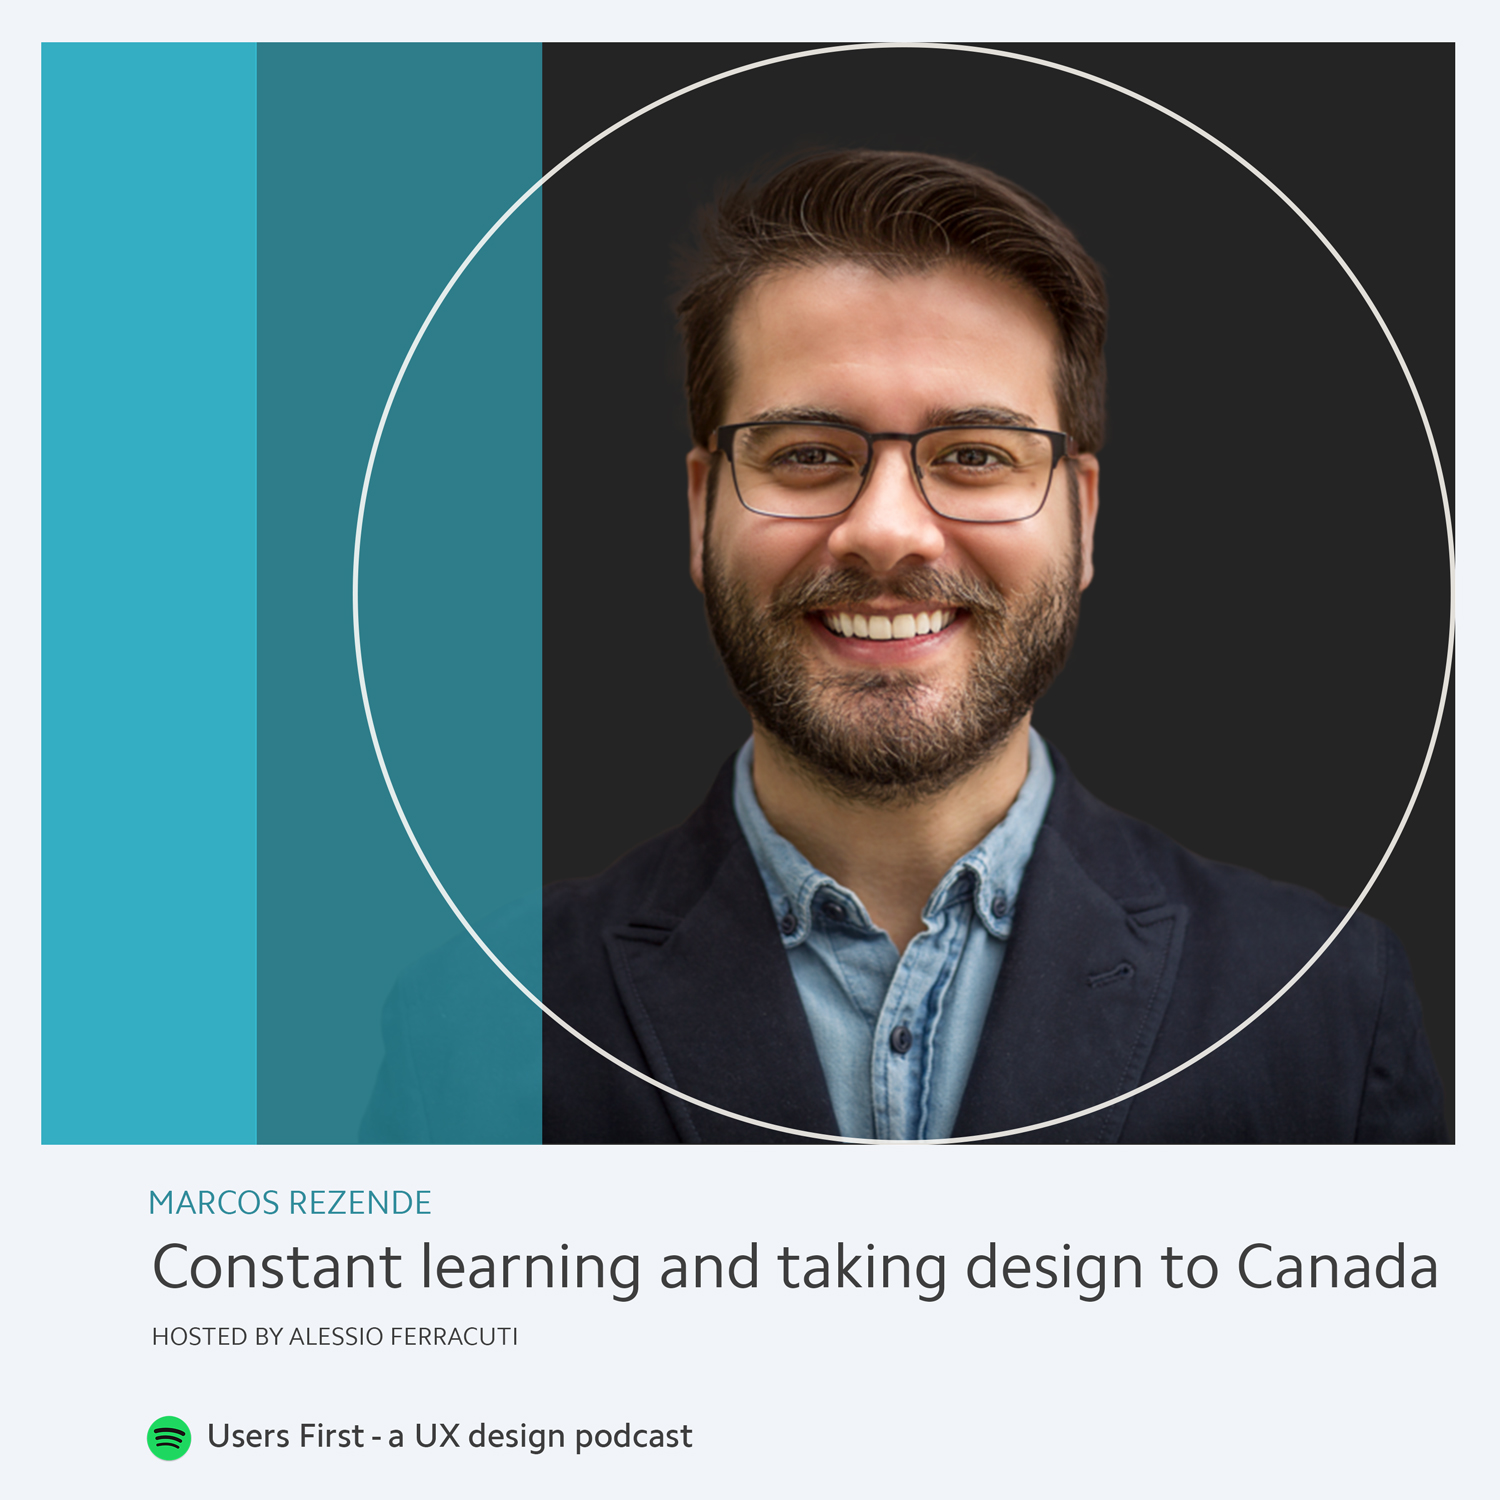 The importance of learning - Taking user experience design from Brazil to Canada